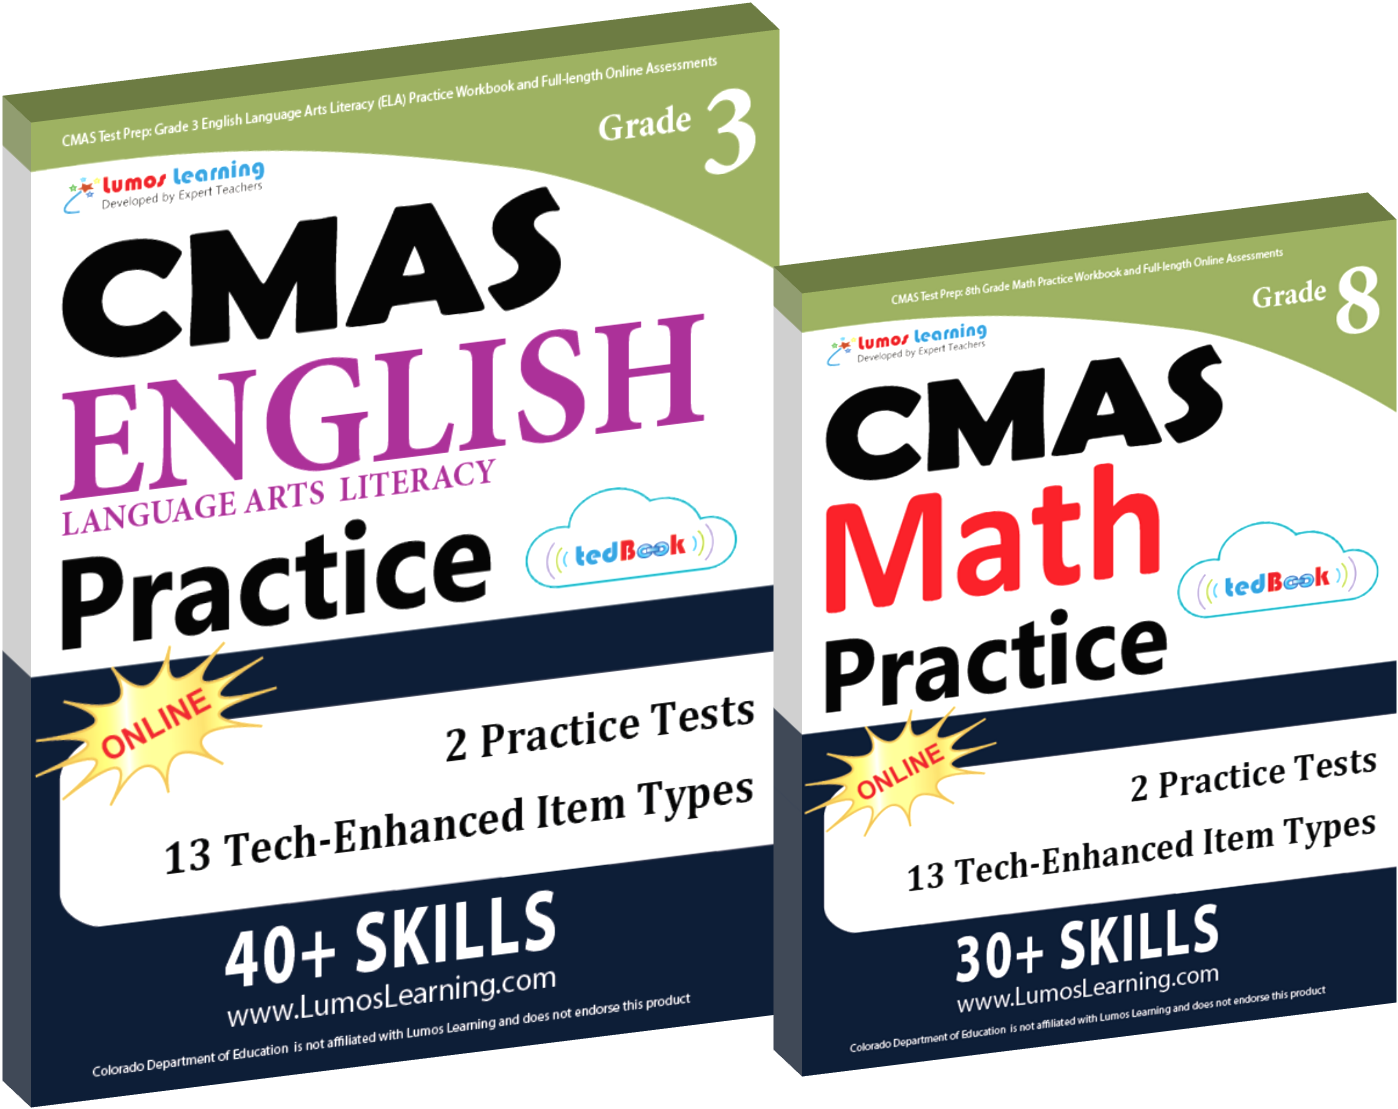 Printed Practice Workbooks and Online Practice Tests for CMAS